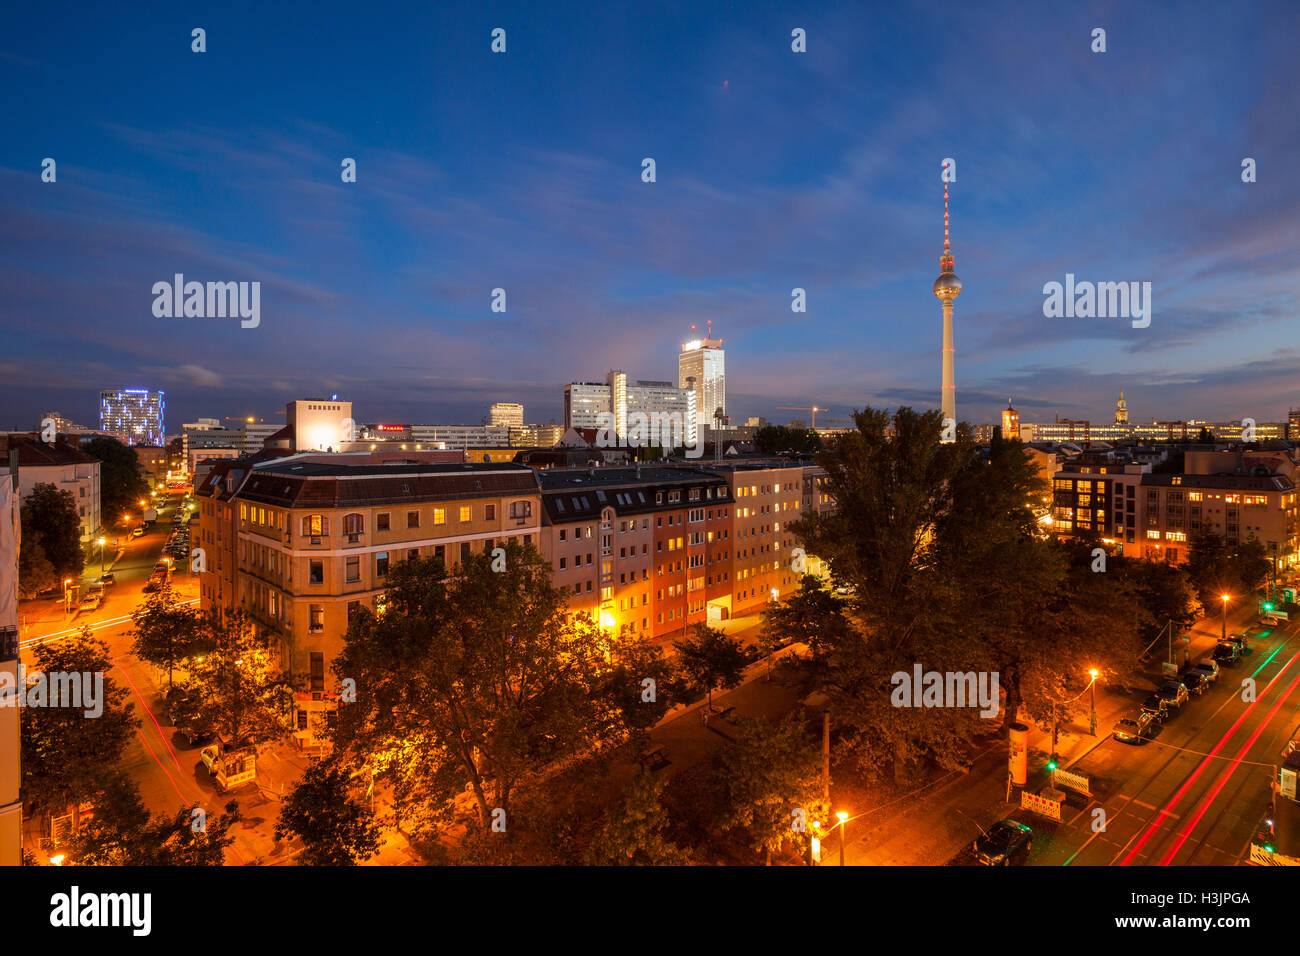 BERLIN - October 2, 2016: Berlin's Alexanderplatz and Fernsehturm (TV Tower) on October 2, 2016. Stock Photo